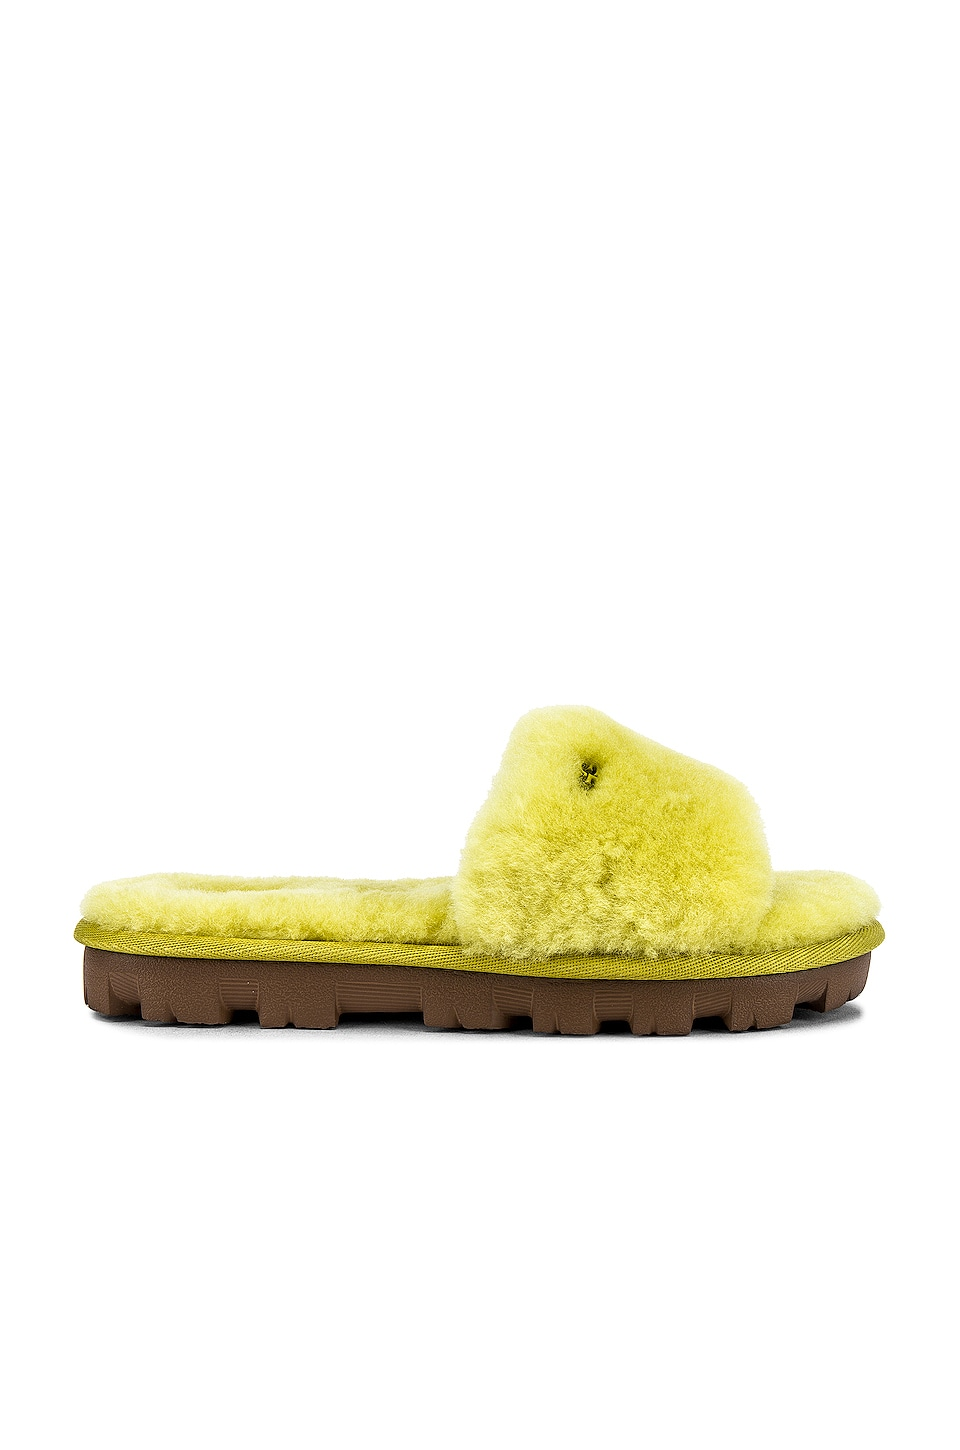 UGG Cozette Slide in Electric Lime